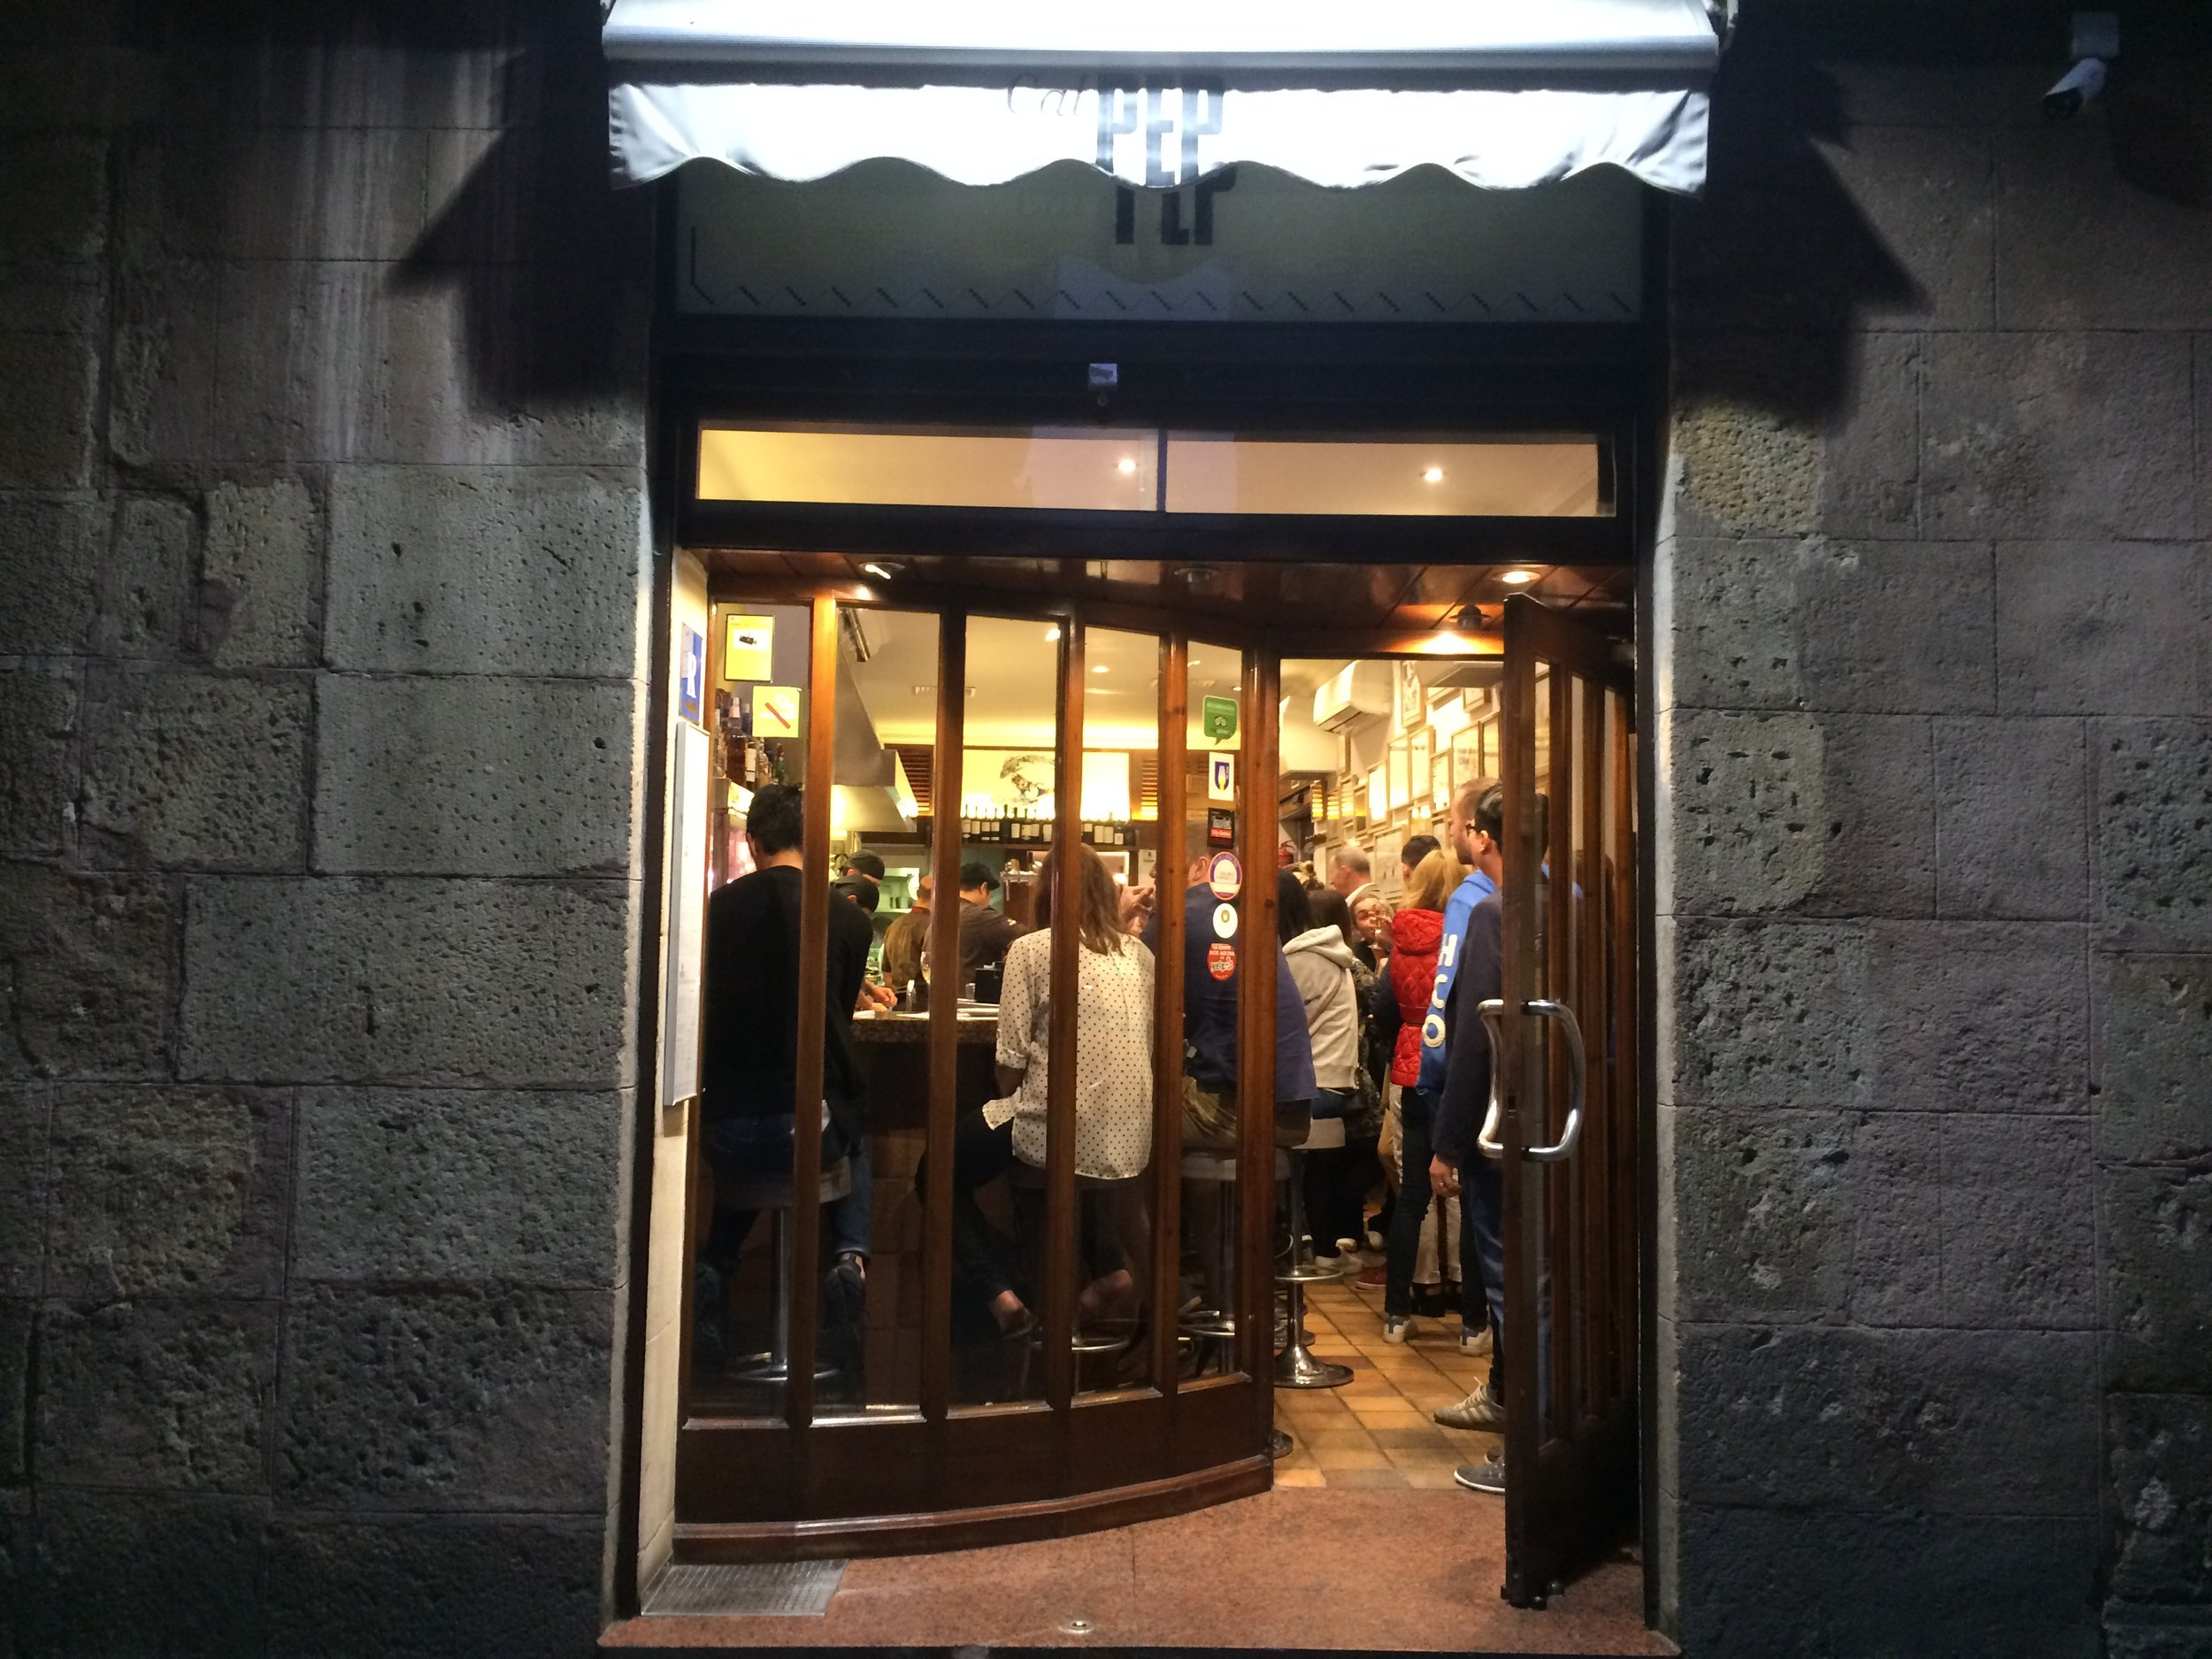 Cal Pep is located between the Gothic Quarter and La Barceloneta.